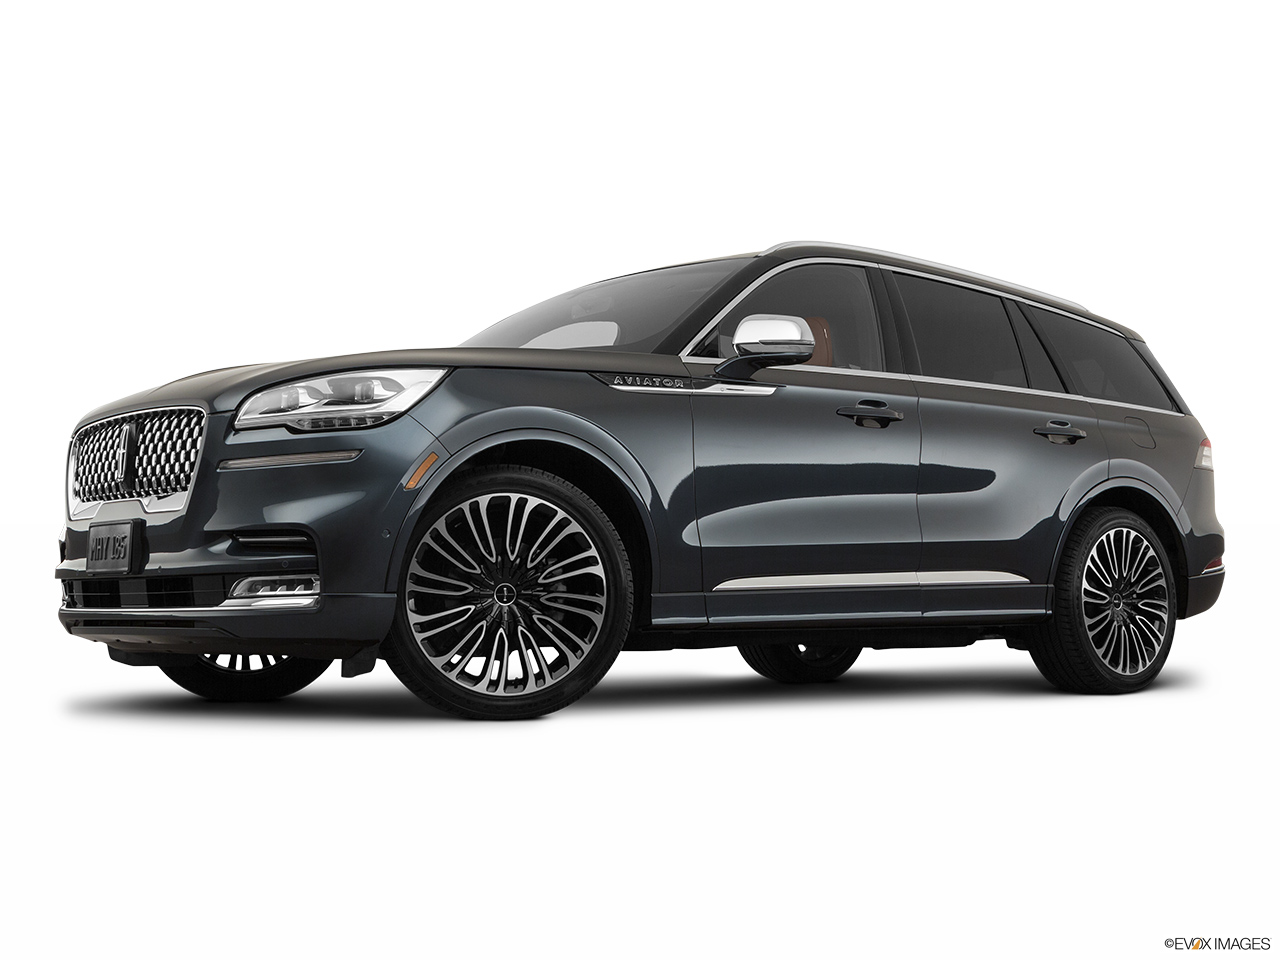 2020 Lincoln Aviator Black Label Low/wide front 5/8.